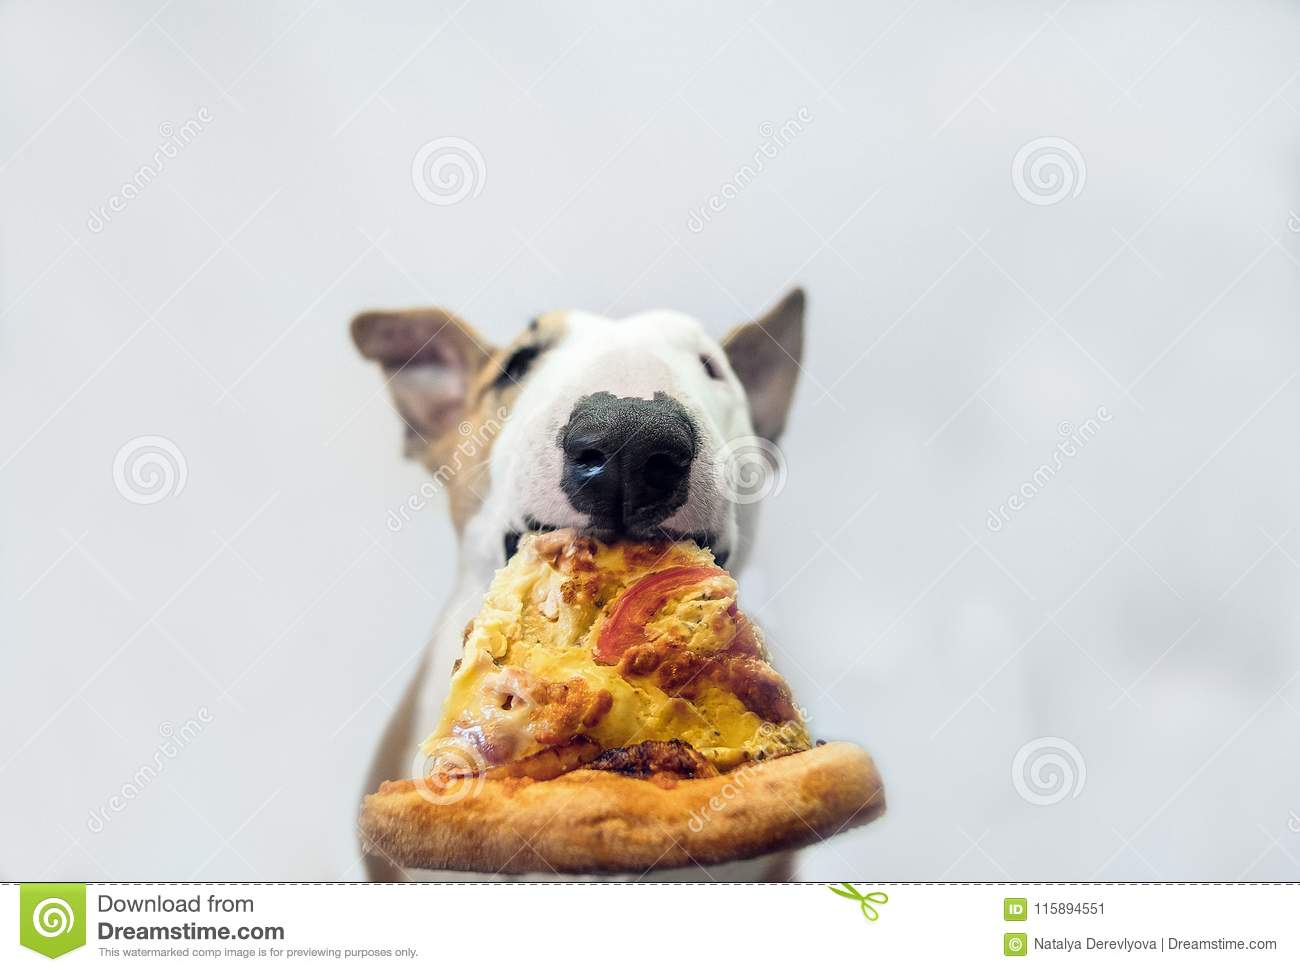 The dog eats a tasty juicy pizza and frowns enough.